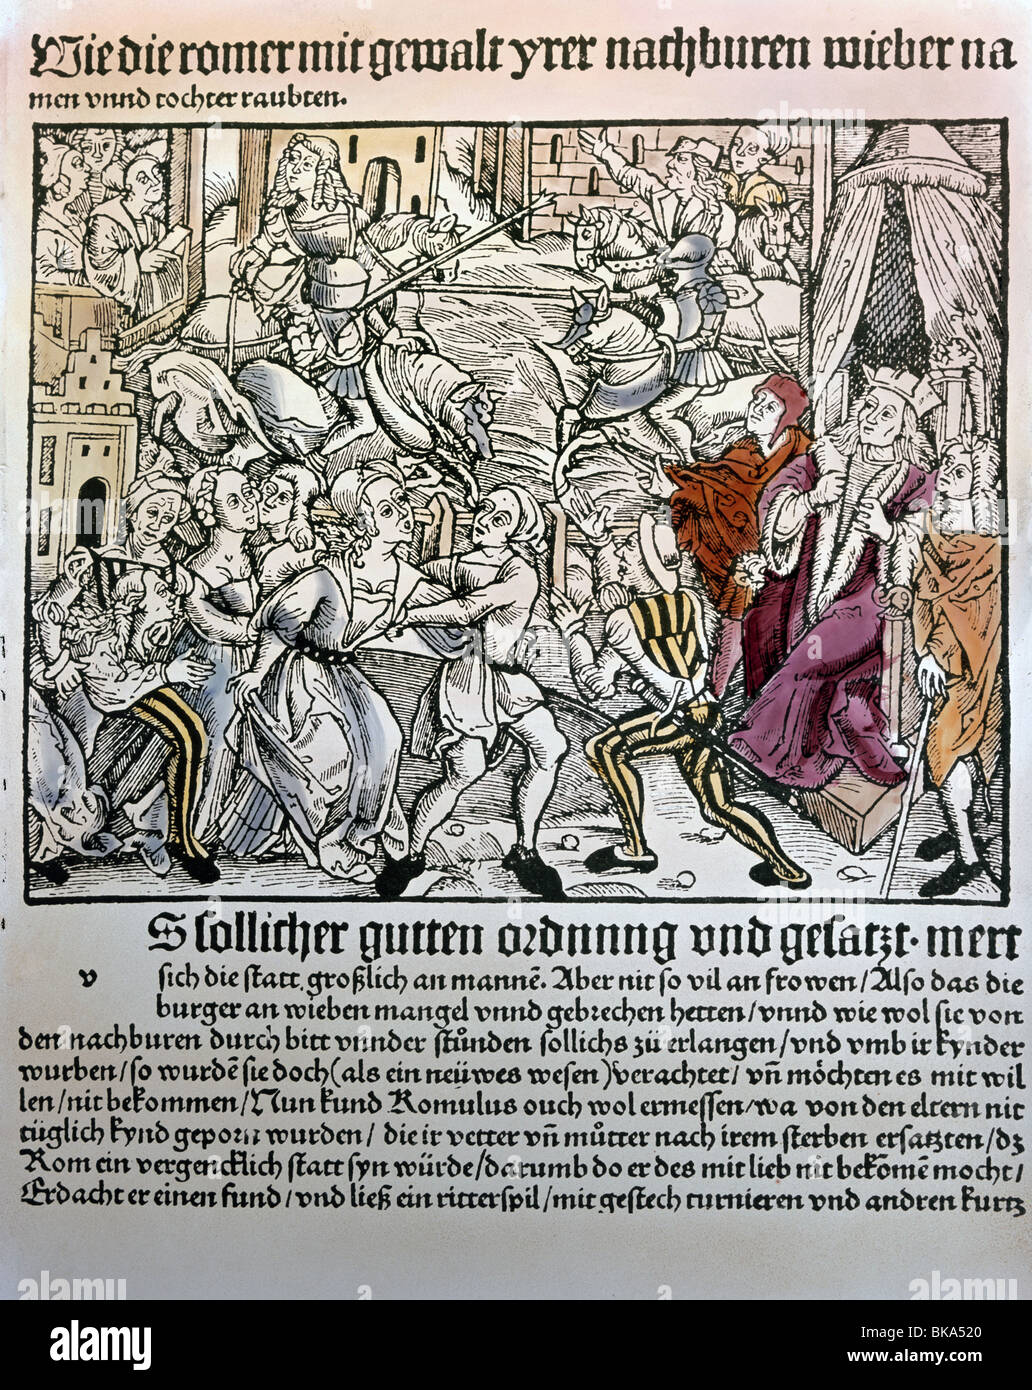 literature, 16th century, book illustration of 'War with the Sabines', chronicle, Southern Germany, circa - Stock Image